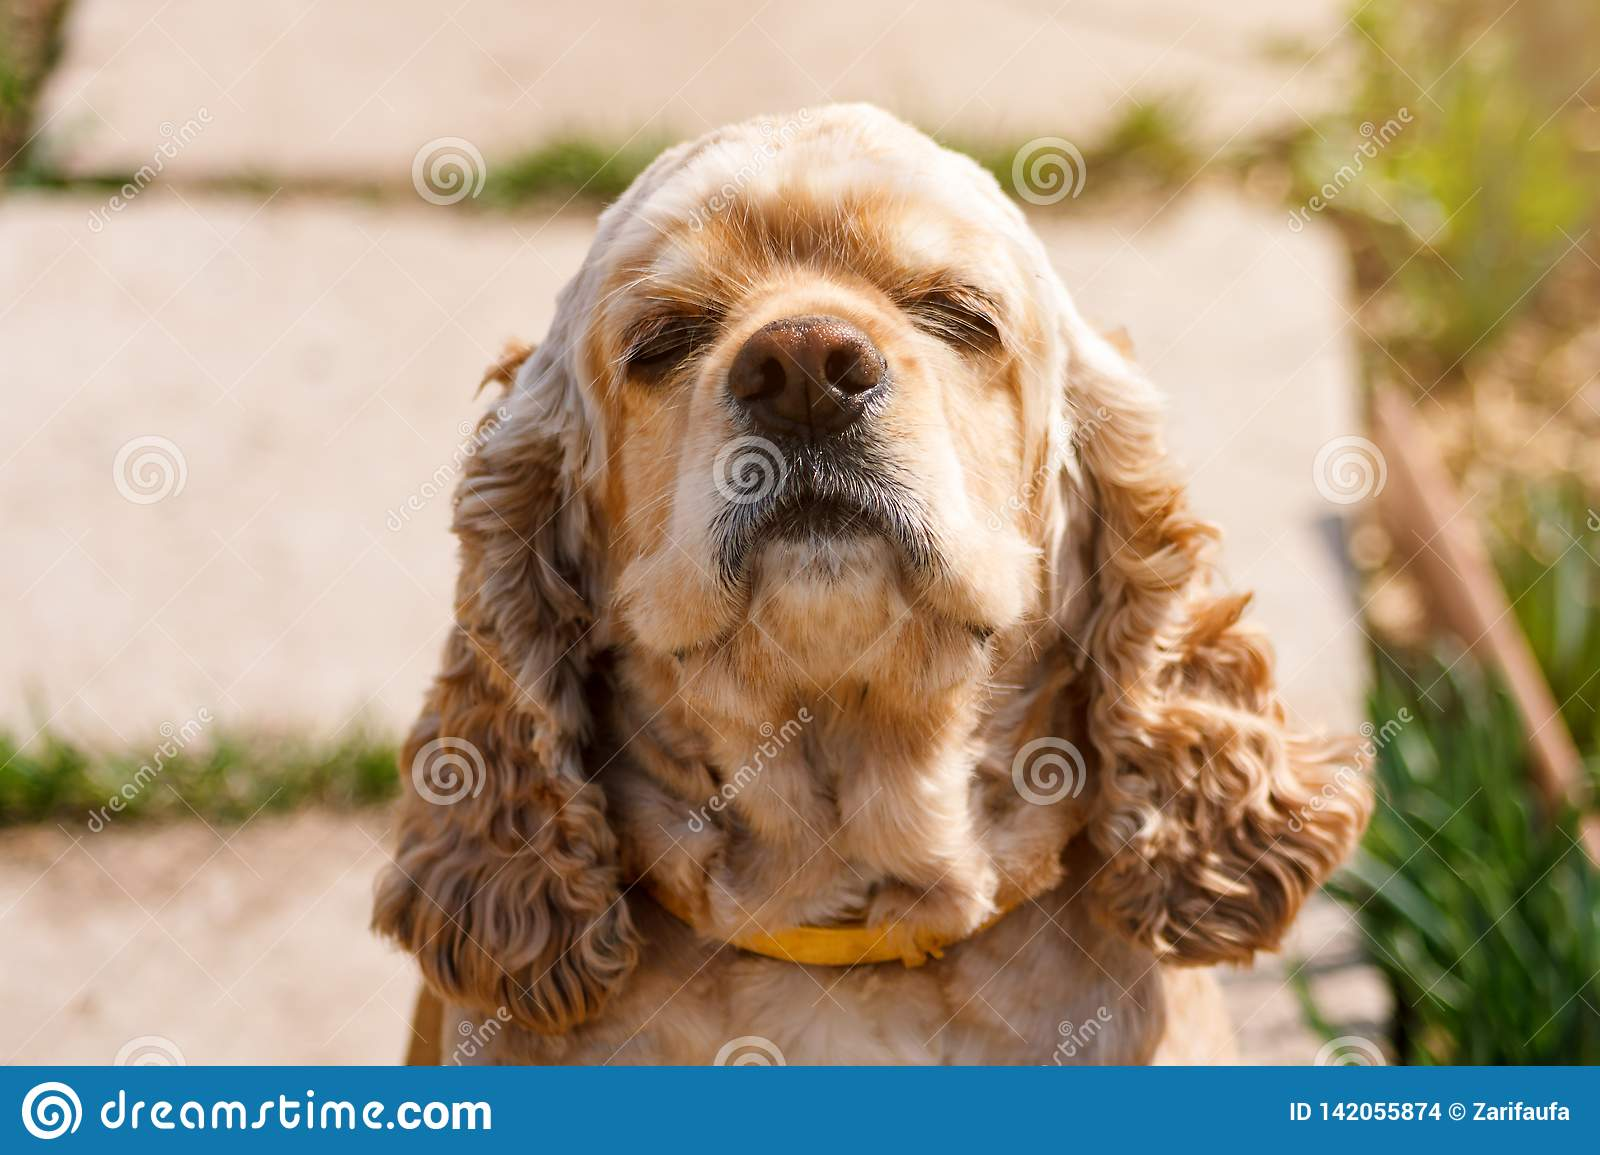 Golden Cocker Spaniel Sniffs The Air In Sunlight Stock Photo Image Of Domestic Cocker 142055874